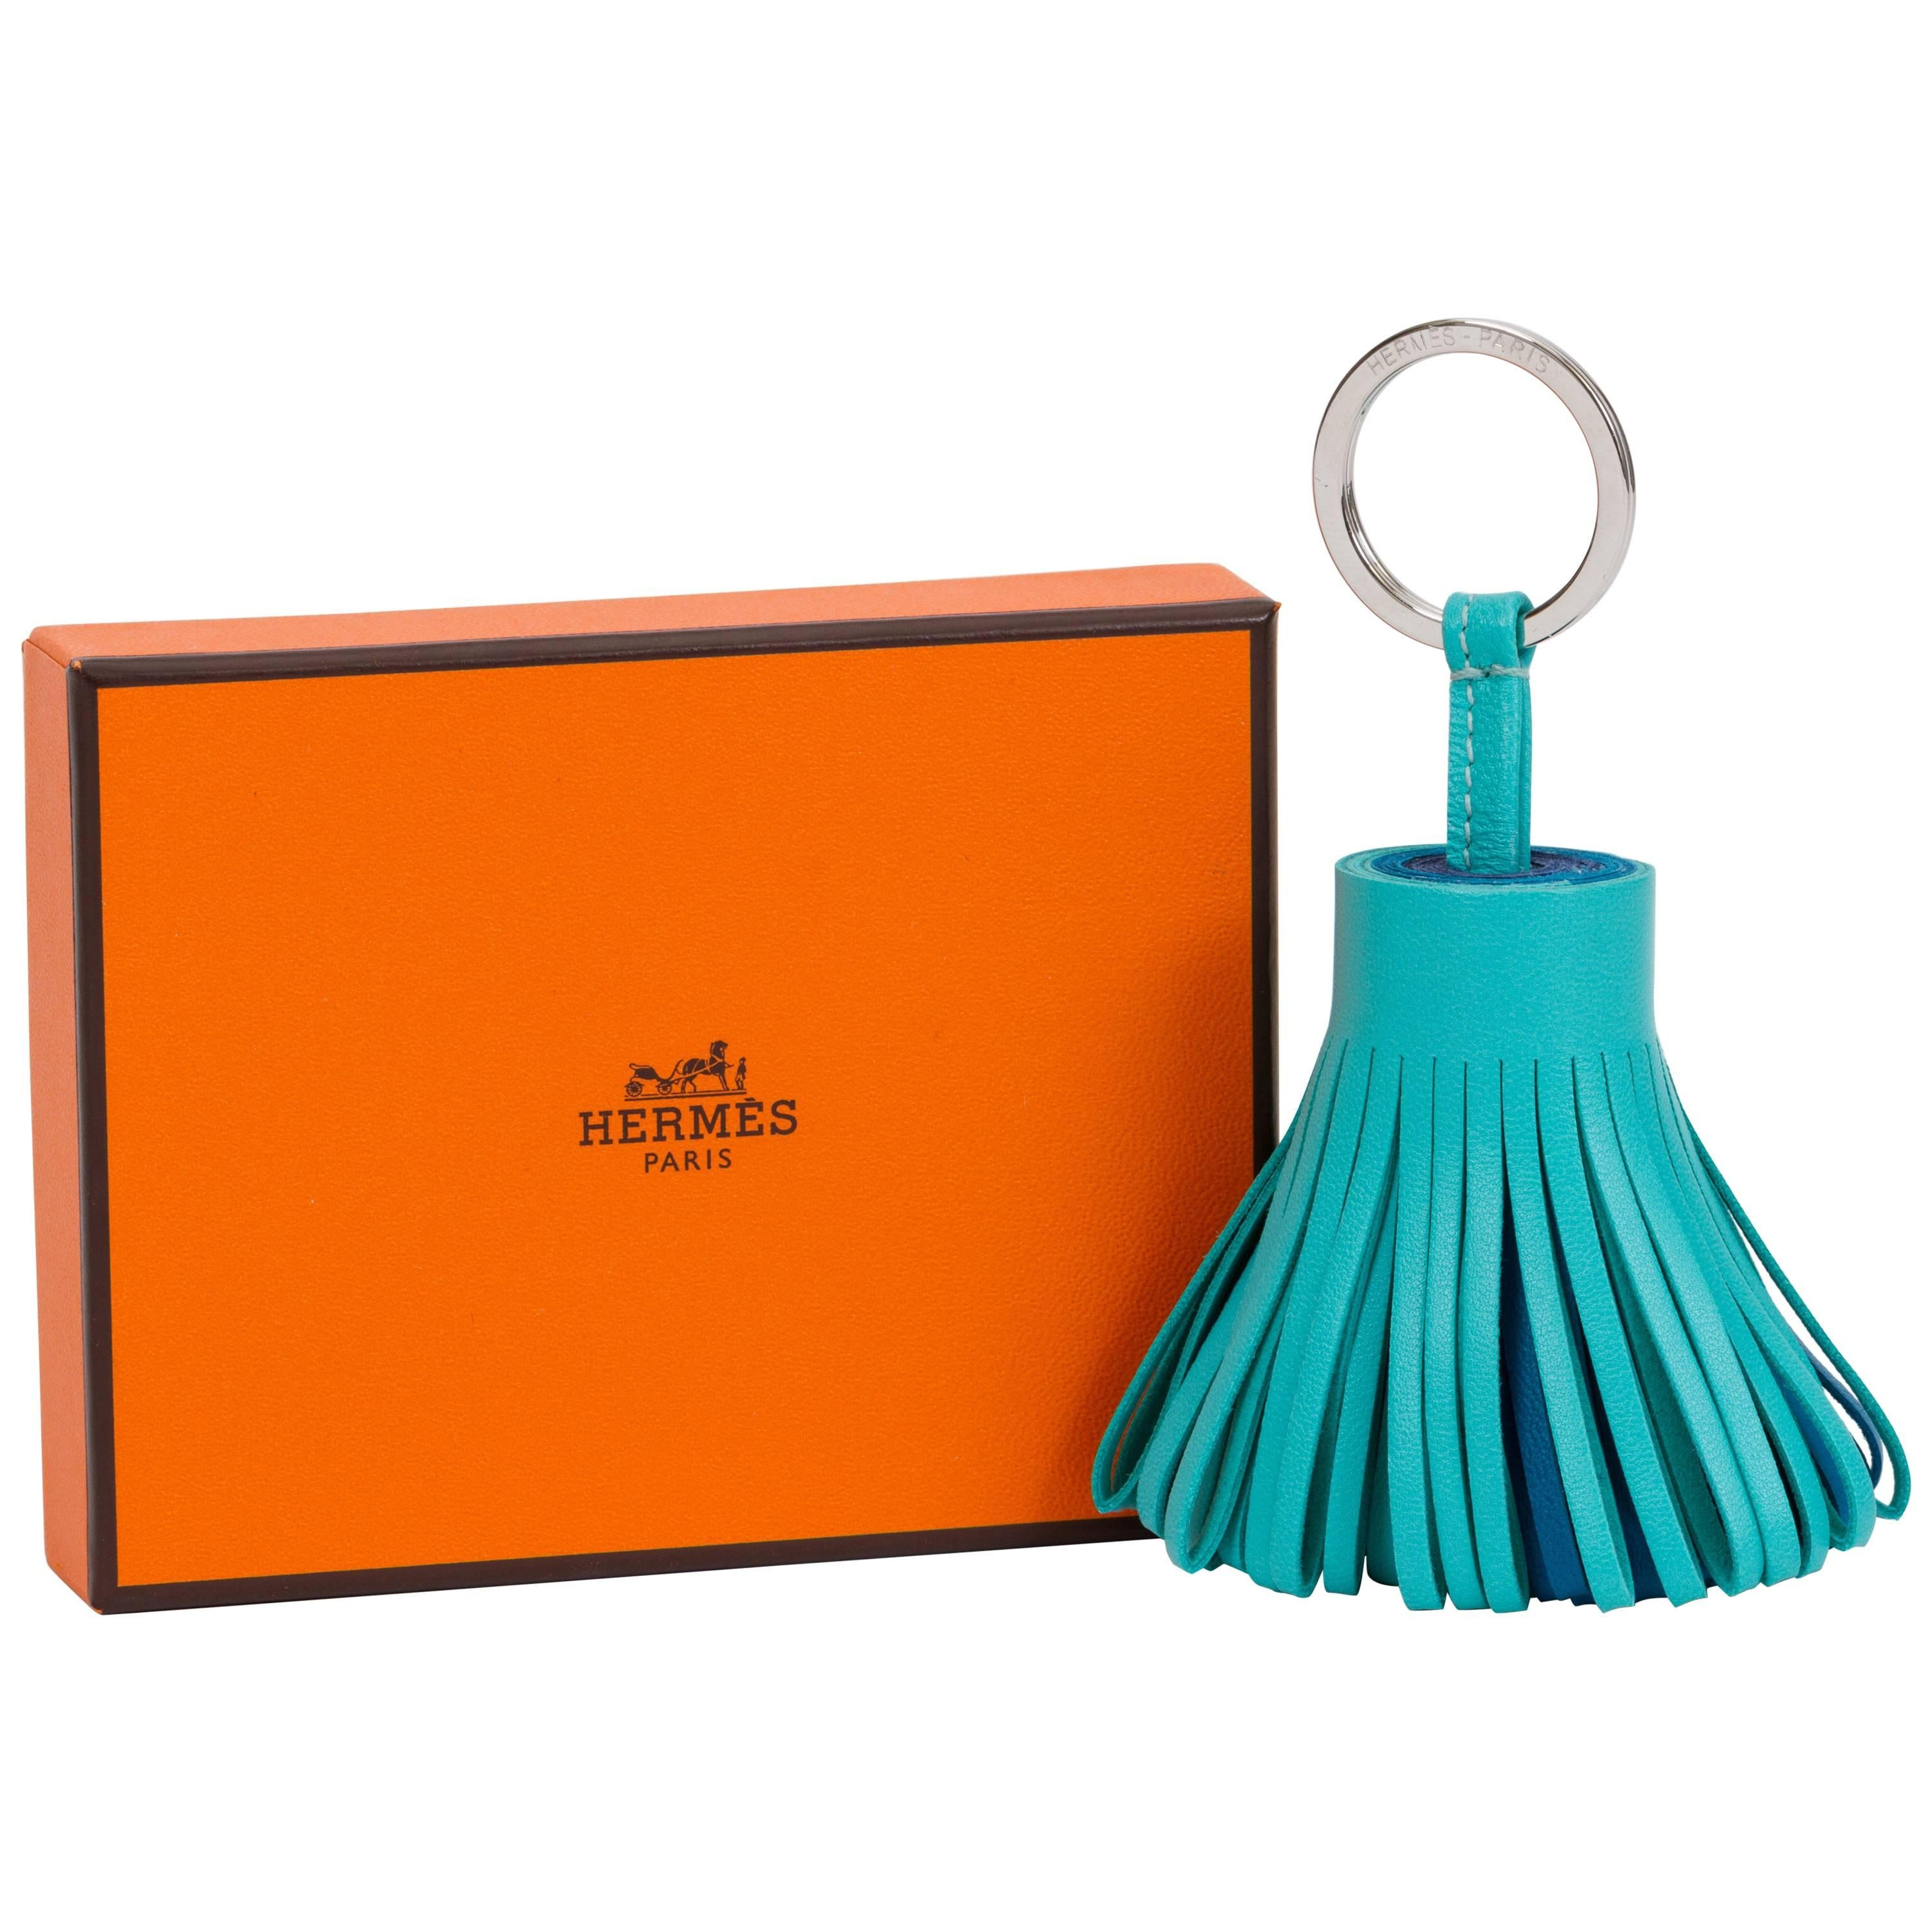 Hermès New In Box Hermes Sold Out Tricolor Tassel Keychain iXt0eUE